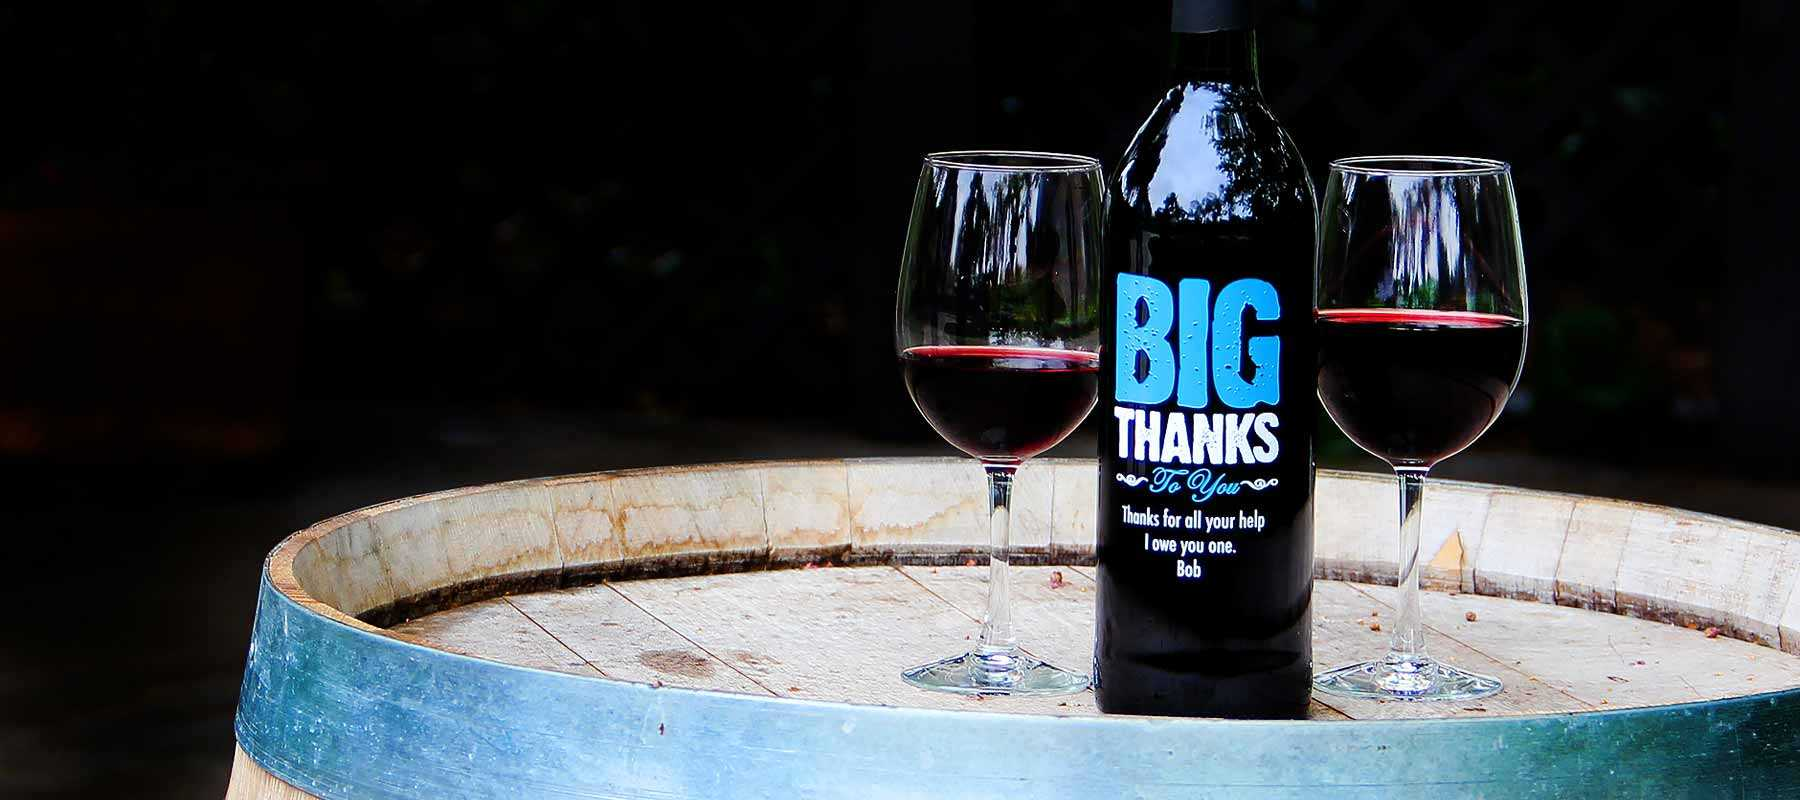 Etching Expressions custom etched thank you wine bottles